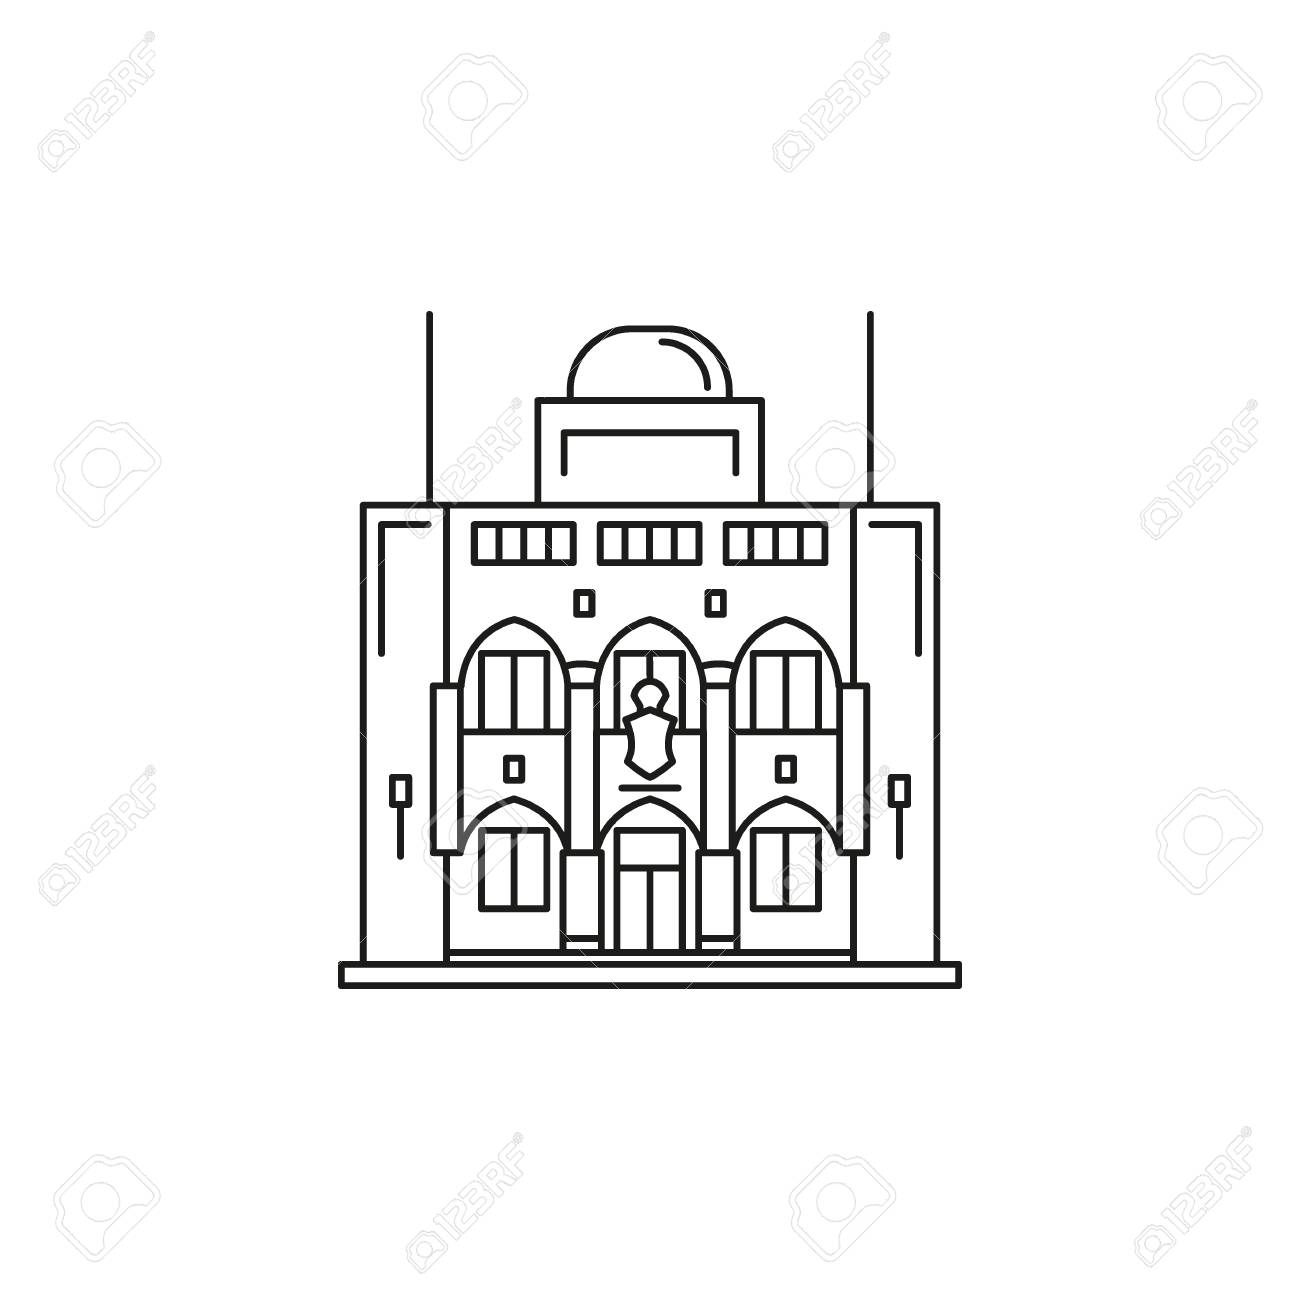 Presidential Palace Icon. Outline Presidential Palace Vector ... on magic kingdom outline, girl outline, village outline, people outline, hospital outline, aqueduct outline, church outline, shop outline, stone outline, zoo outline, apartment outline, coliseum outline, forbidden city outline, bridge outline, beach outline, art outline, pagoda outline, history outline, car outline, temple outline,